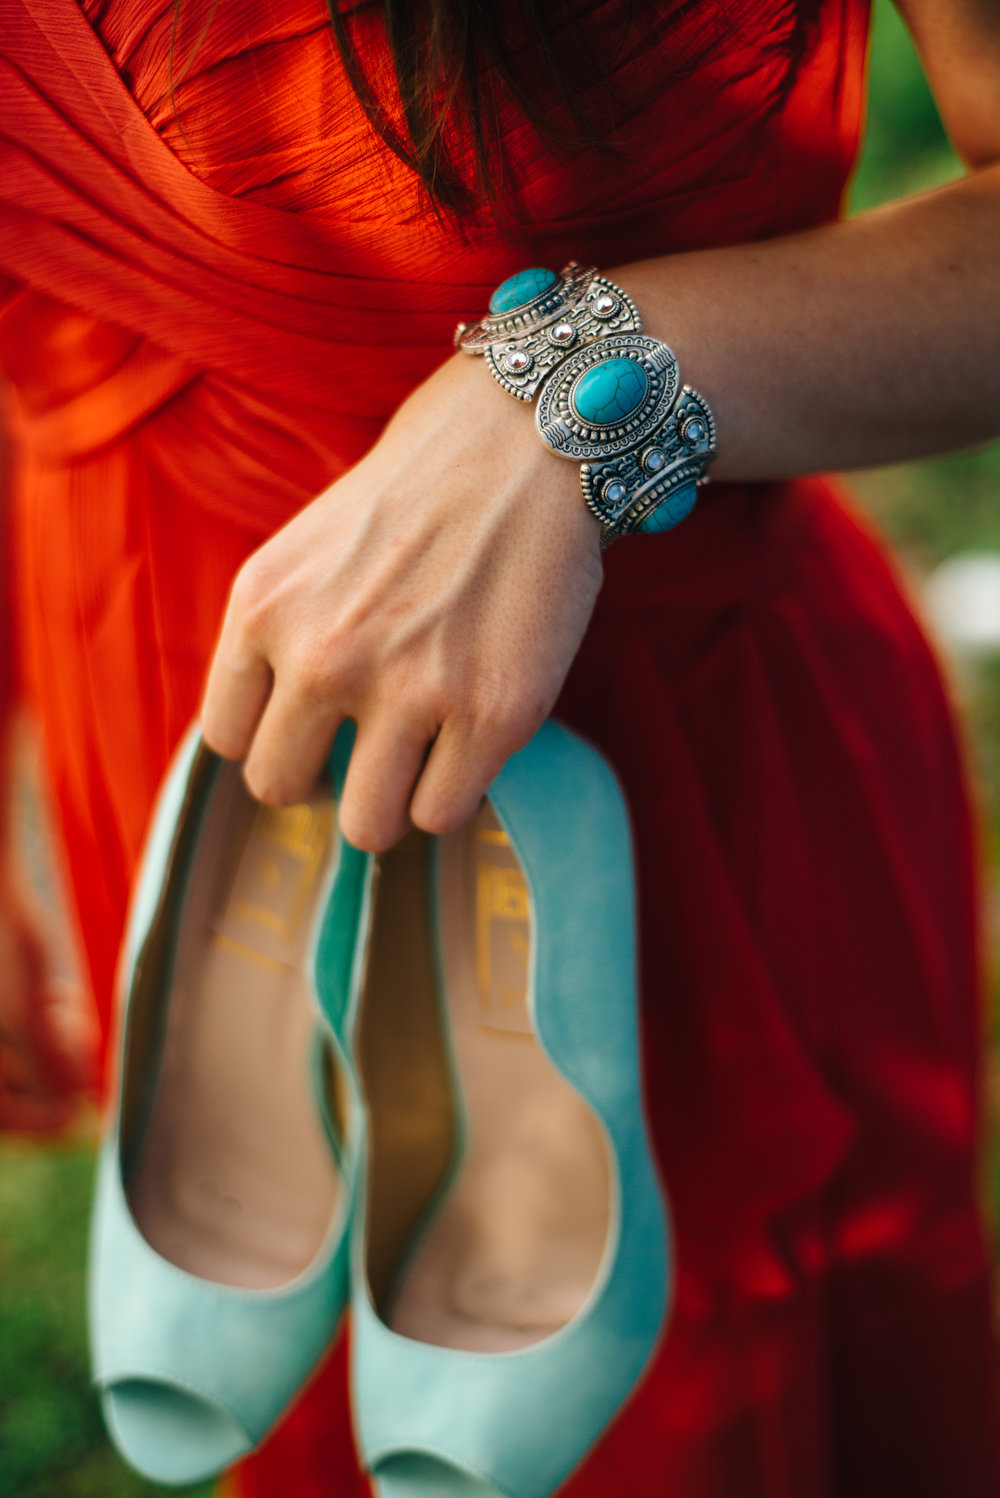 Bridesmaid in orange dress with mint green peep toe pumps and turquoise accent jewelry